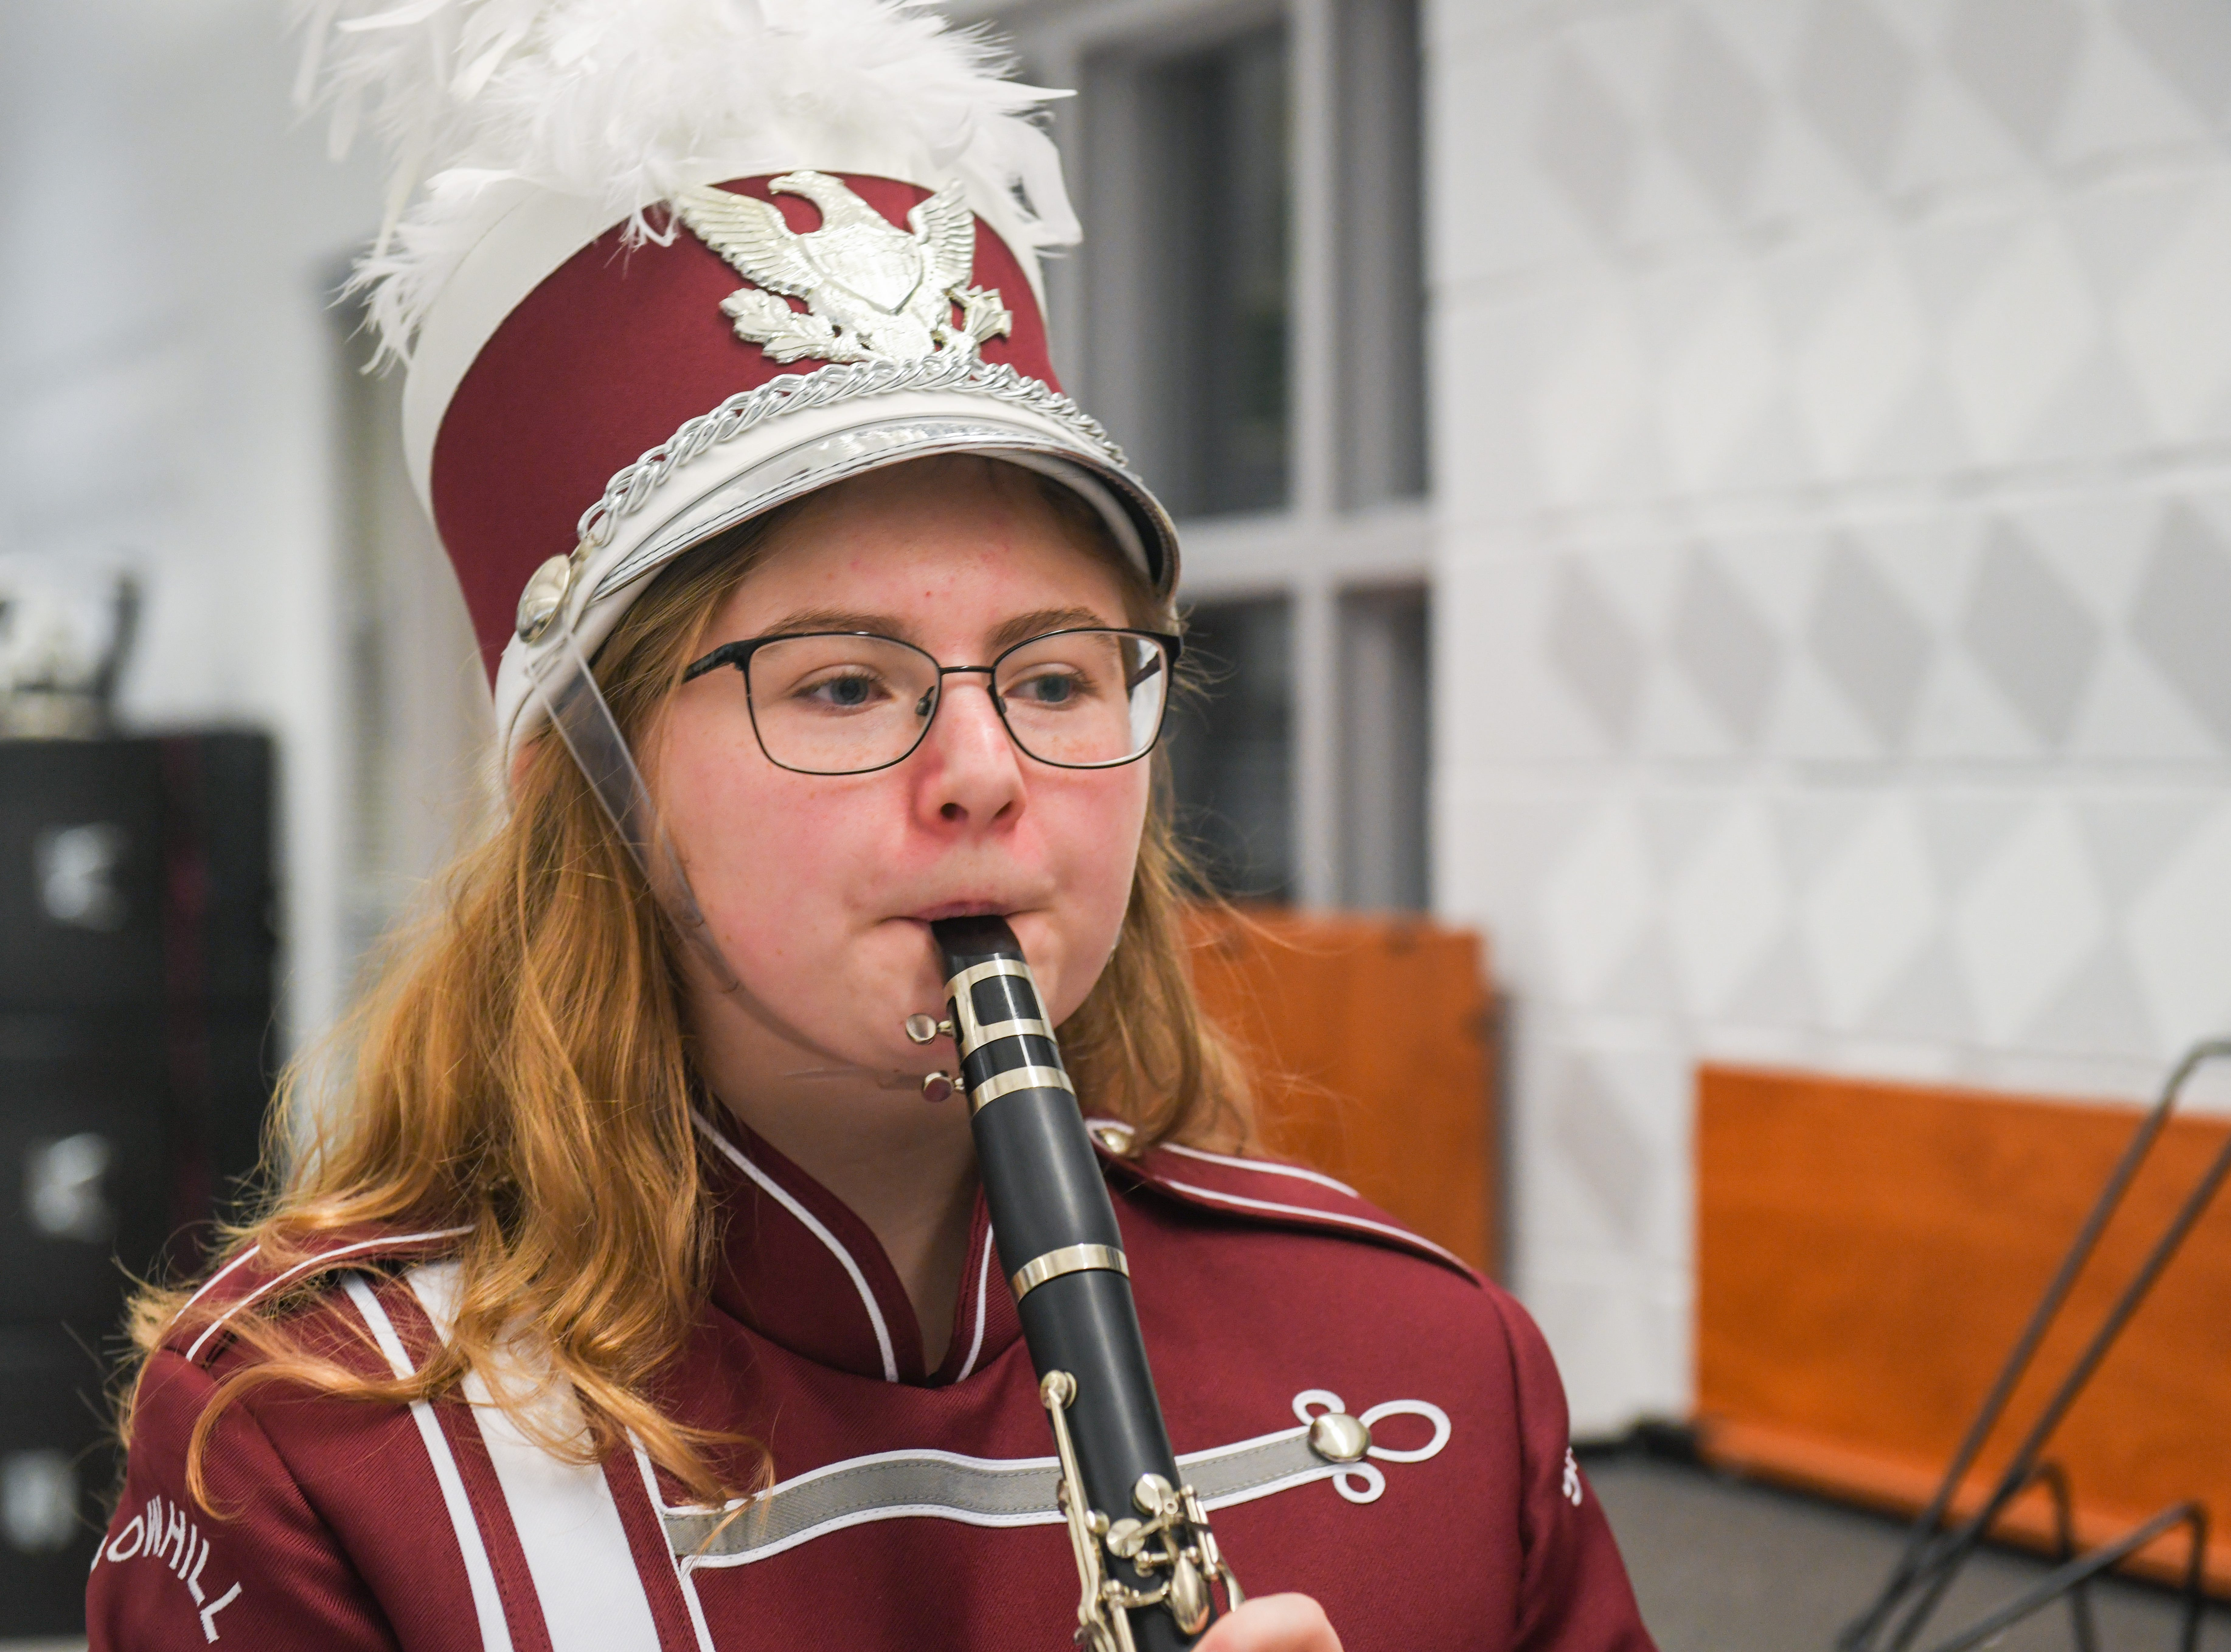 High school freshman Rebecca Eura poses in her new band uniform in Snow Hill on Wednesday, Oct 10, 2018.